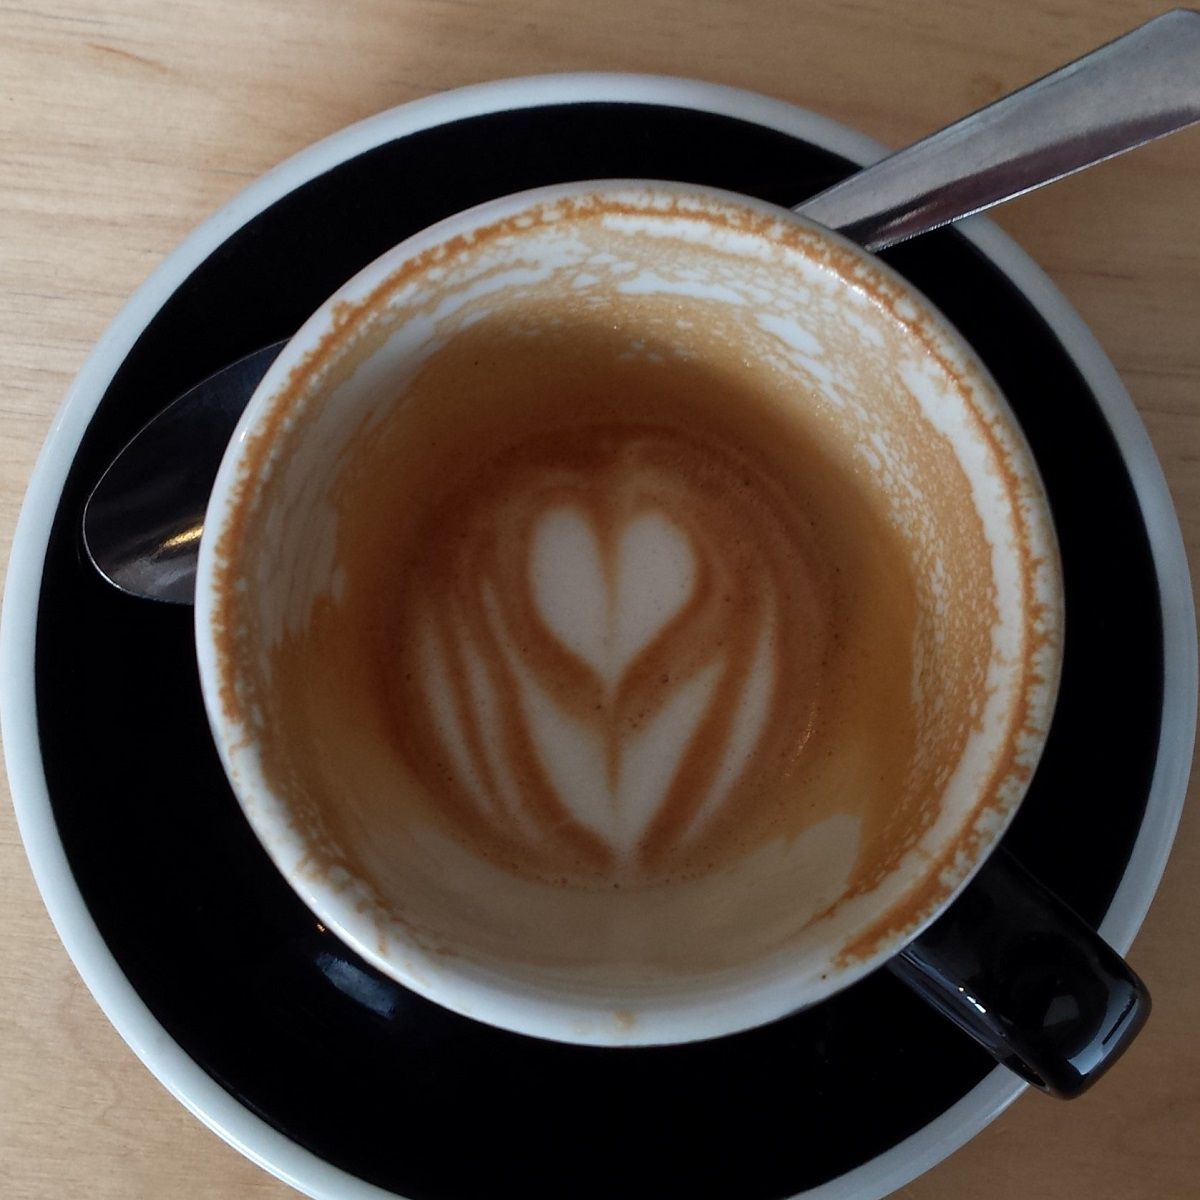 Shot of a tulip cup on a black saucer, taken from above. The coffee is almost gone, but the latte art pattern, a tulip, is still plainly visible in the remainder of the milk in the bottom of the cup.